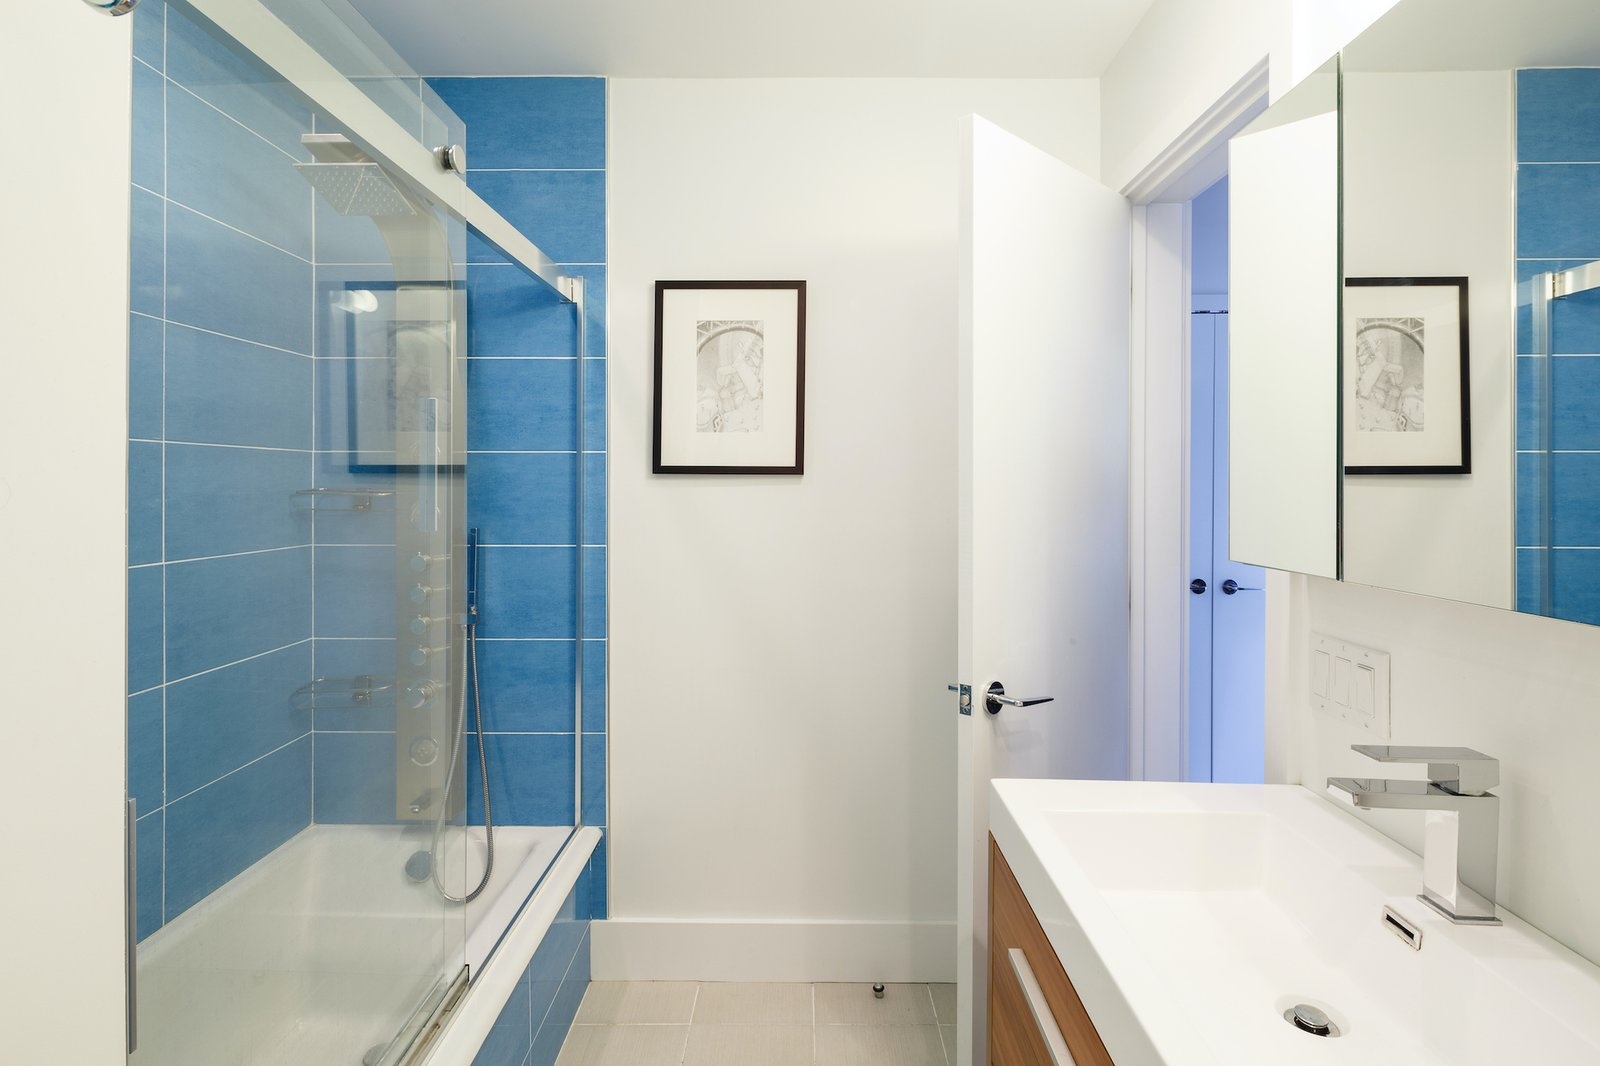 Bathroom of Triangle House by Edgar Papazian Architect.